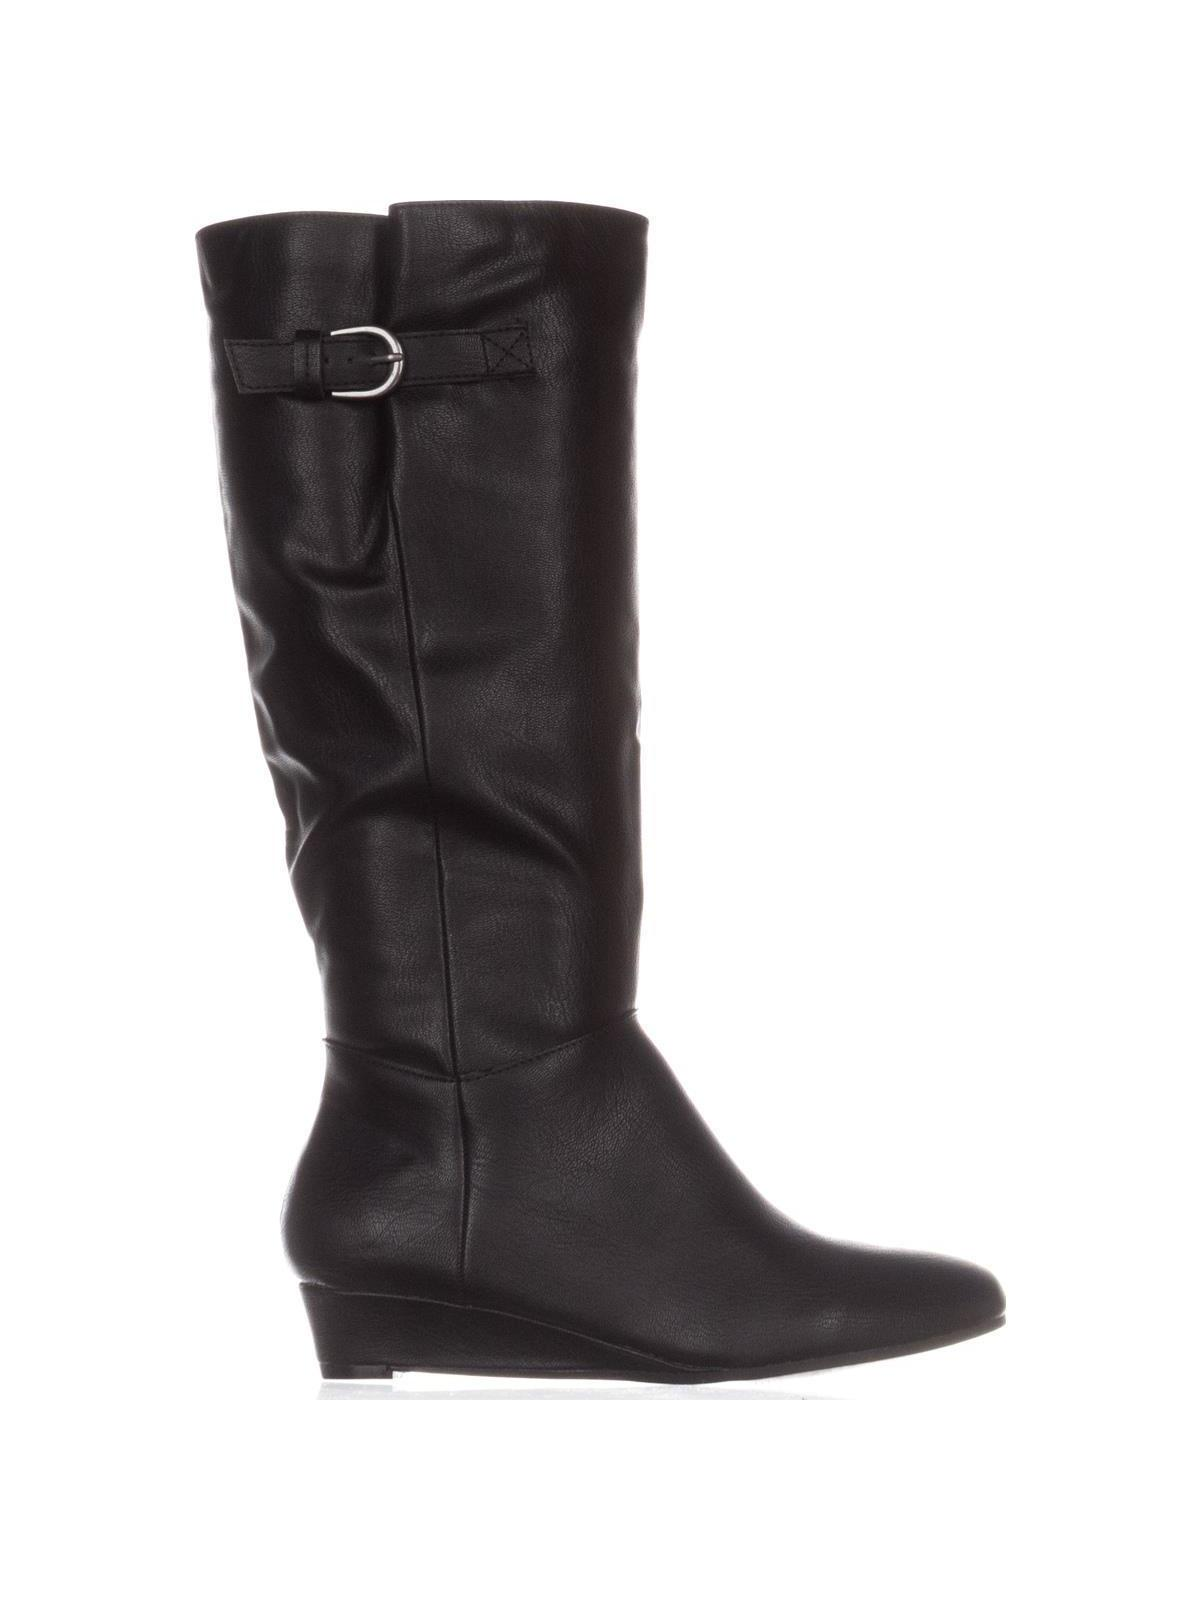 90b9f450fbe8 SC35 - Womens Rainne Wedge Mid-Calf Boots